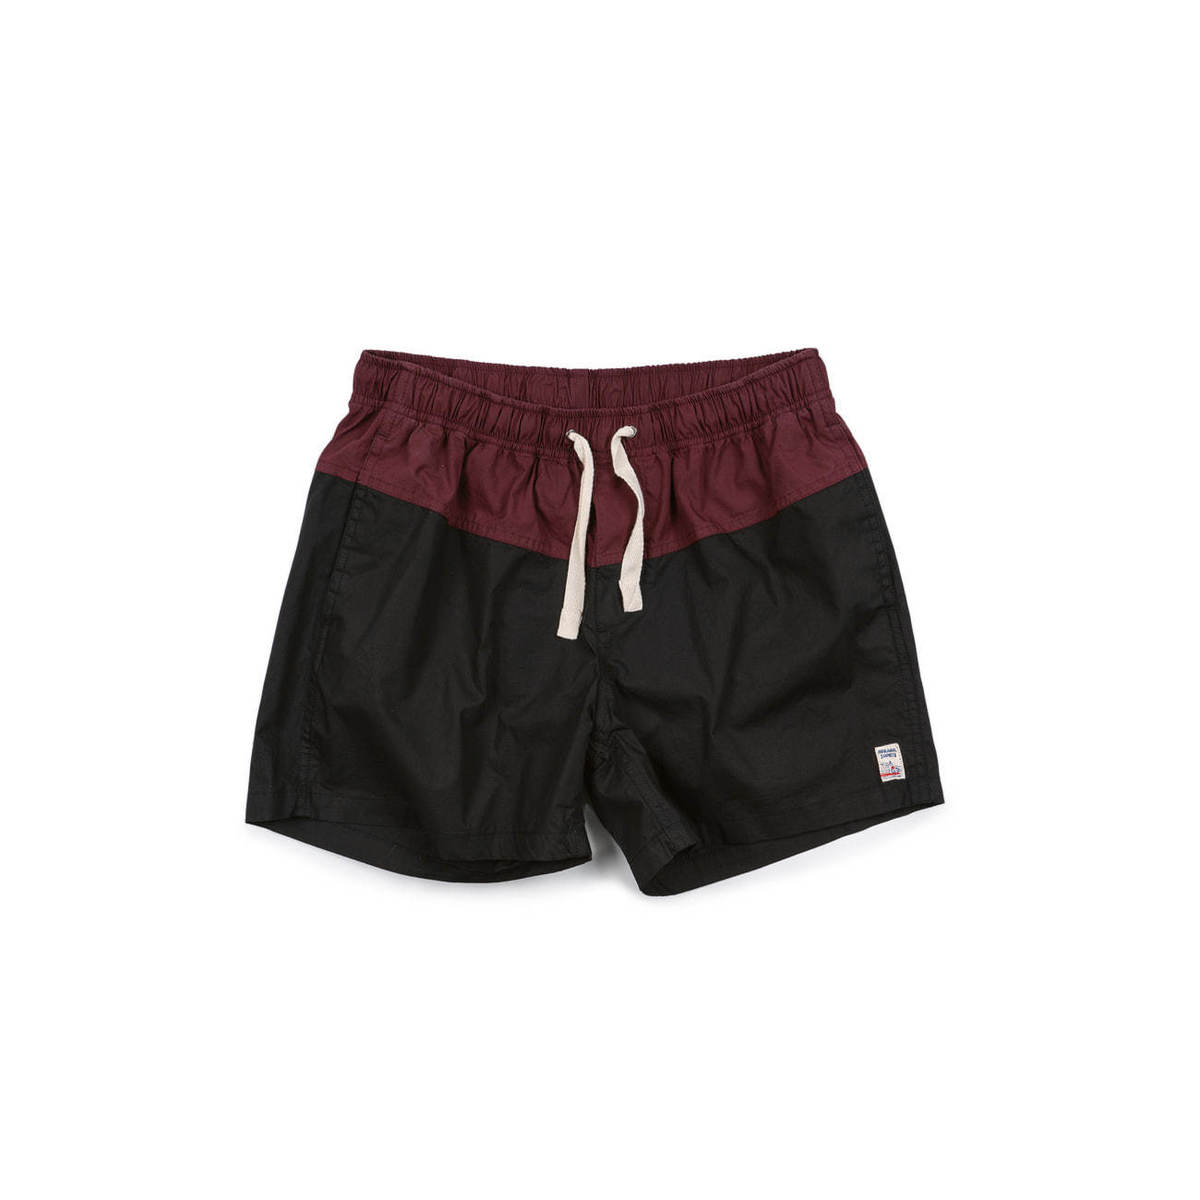 [M.Nii] BASIC DROWNER TRUNK 'BLACK & WINE'